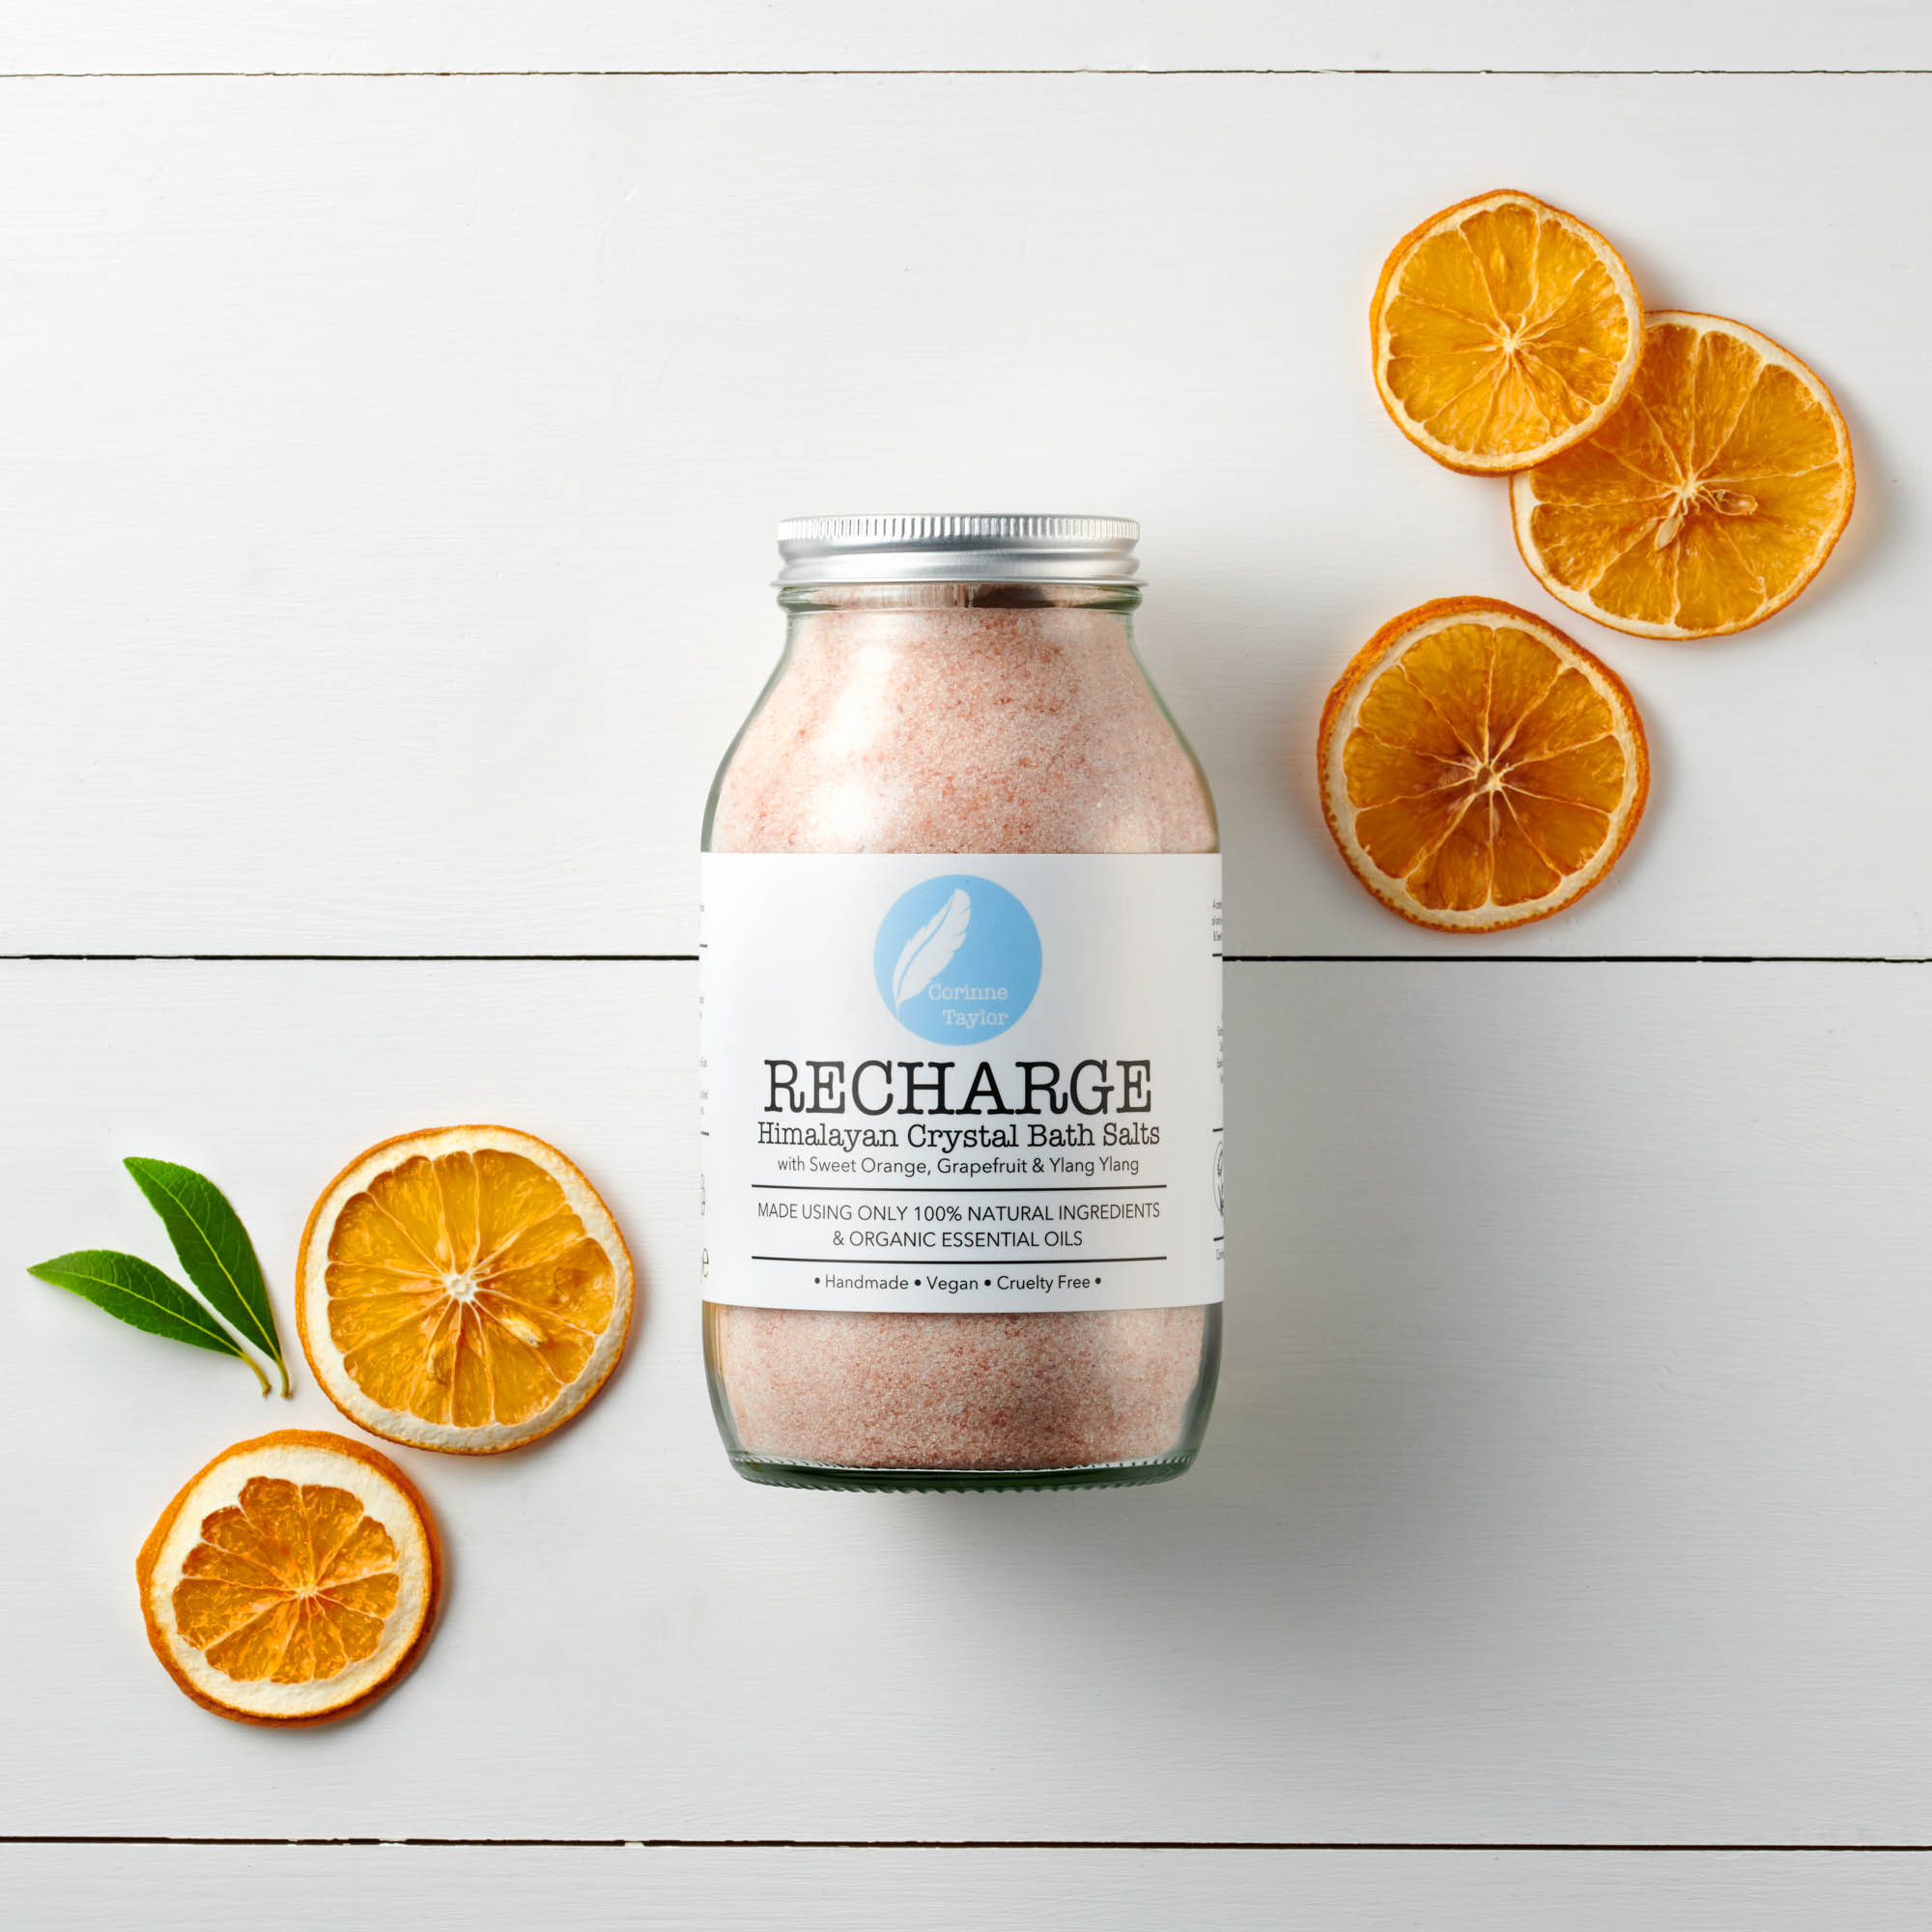 Recharge Himalayan Bath Salts by Corinne Taylor. 100% natural, vegan, cruelty free. With organic Grapefruit, Sweet Orange and Ylang Ylang essential oils.